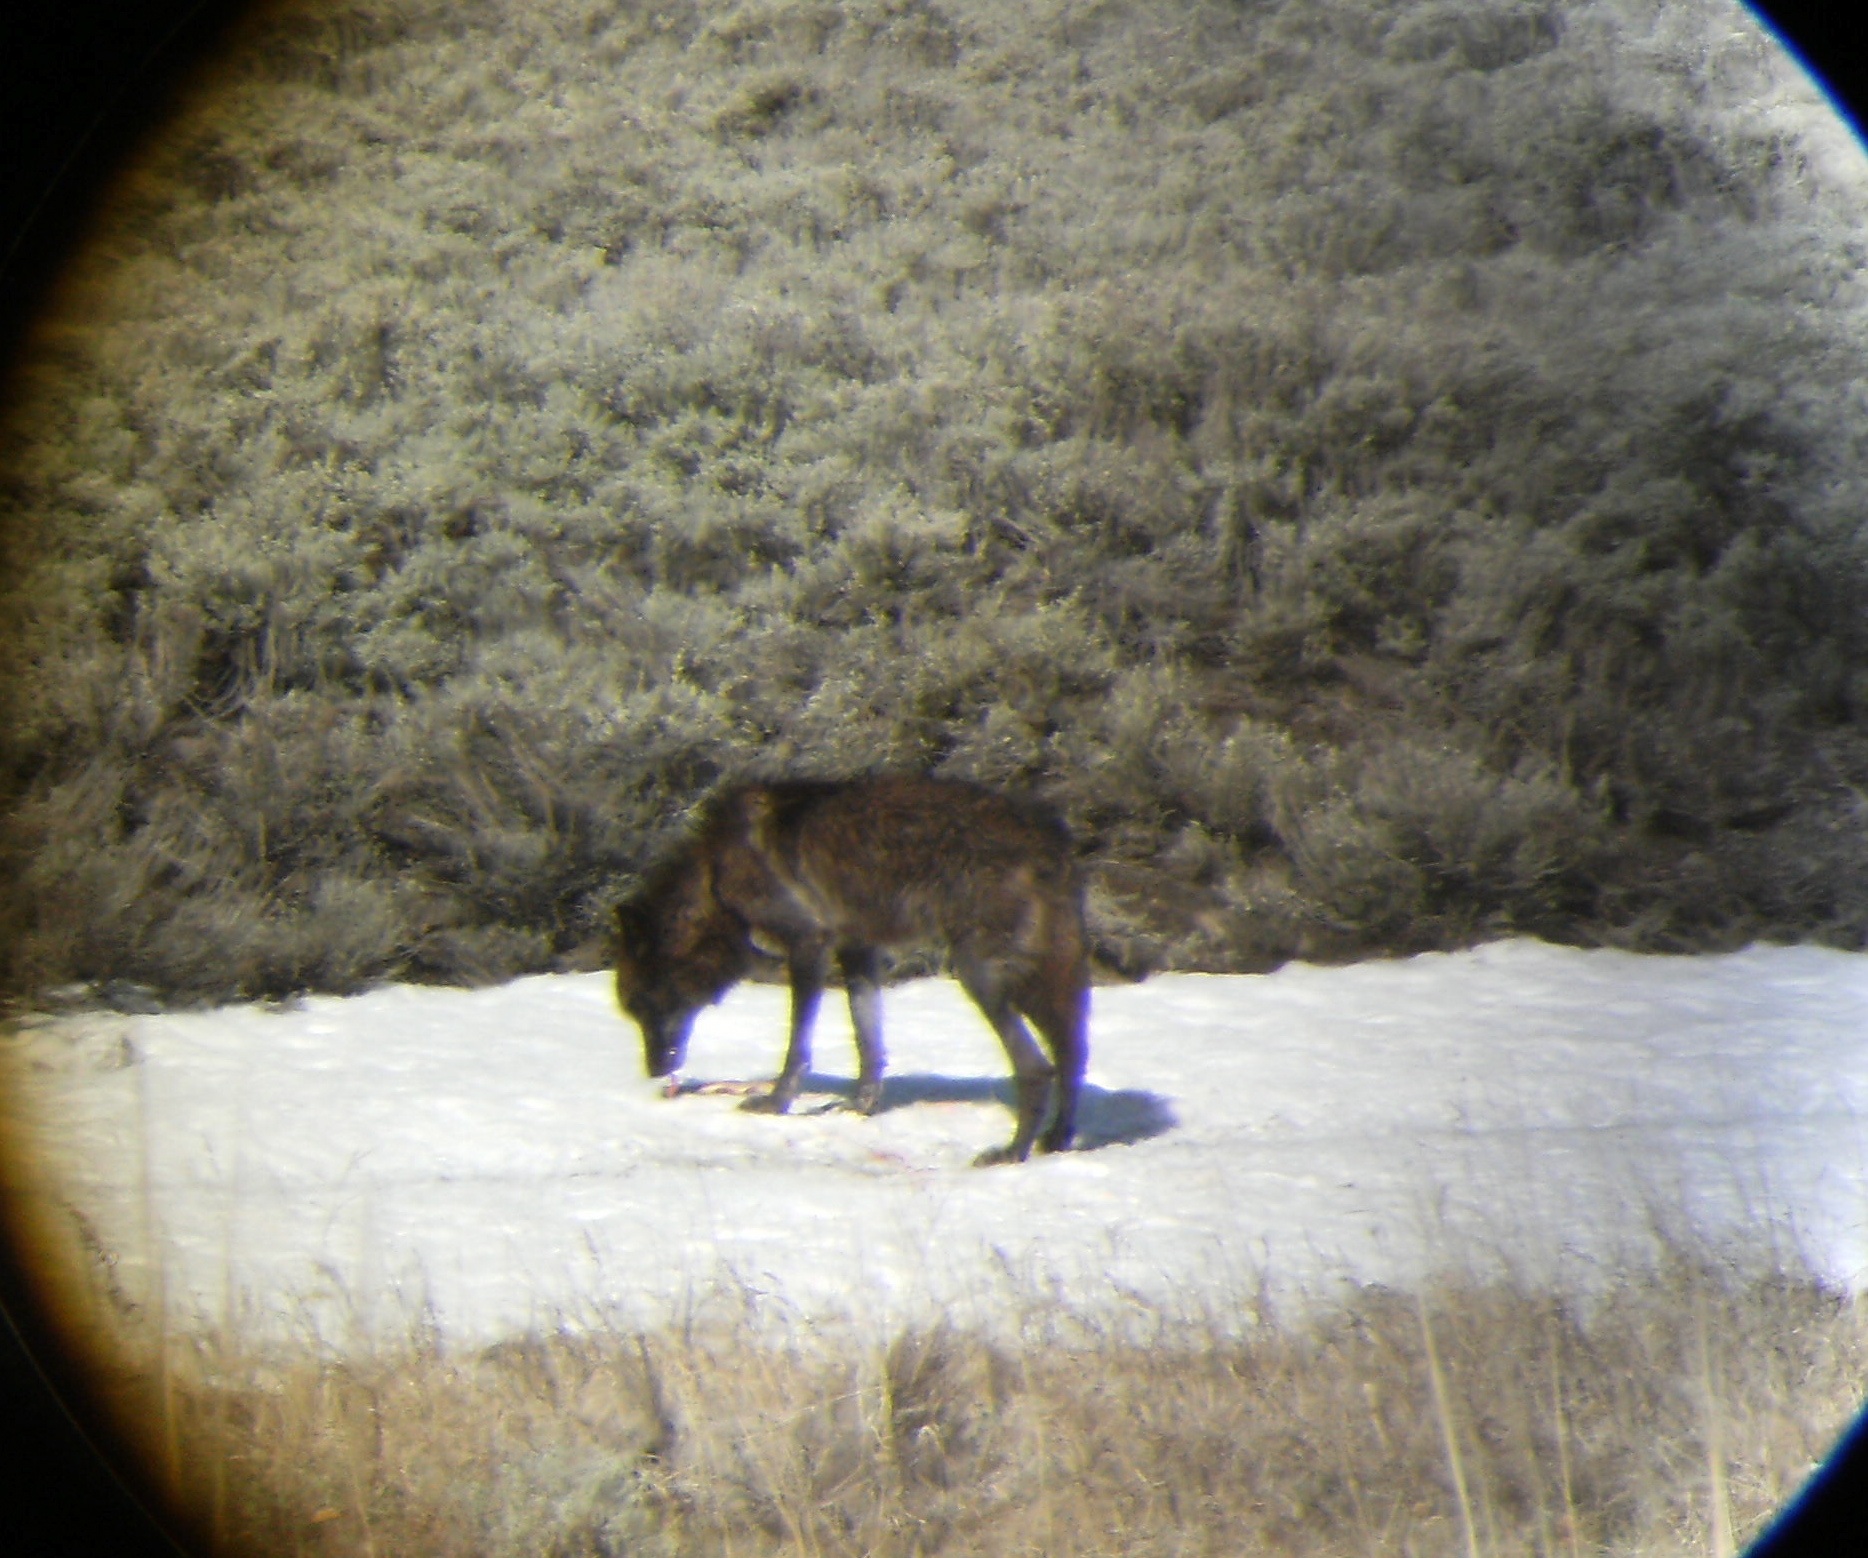 Wolf eating a fish